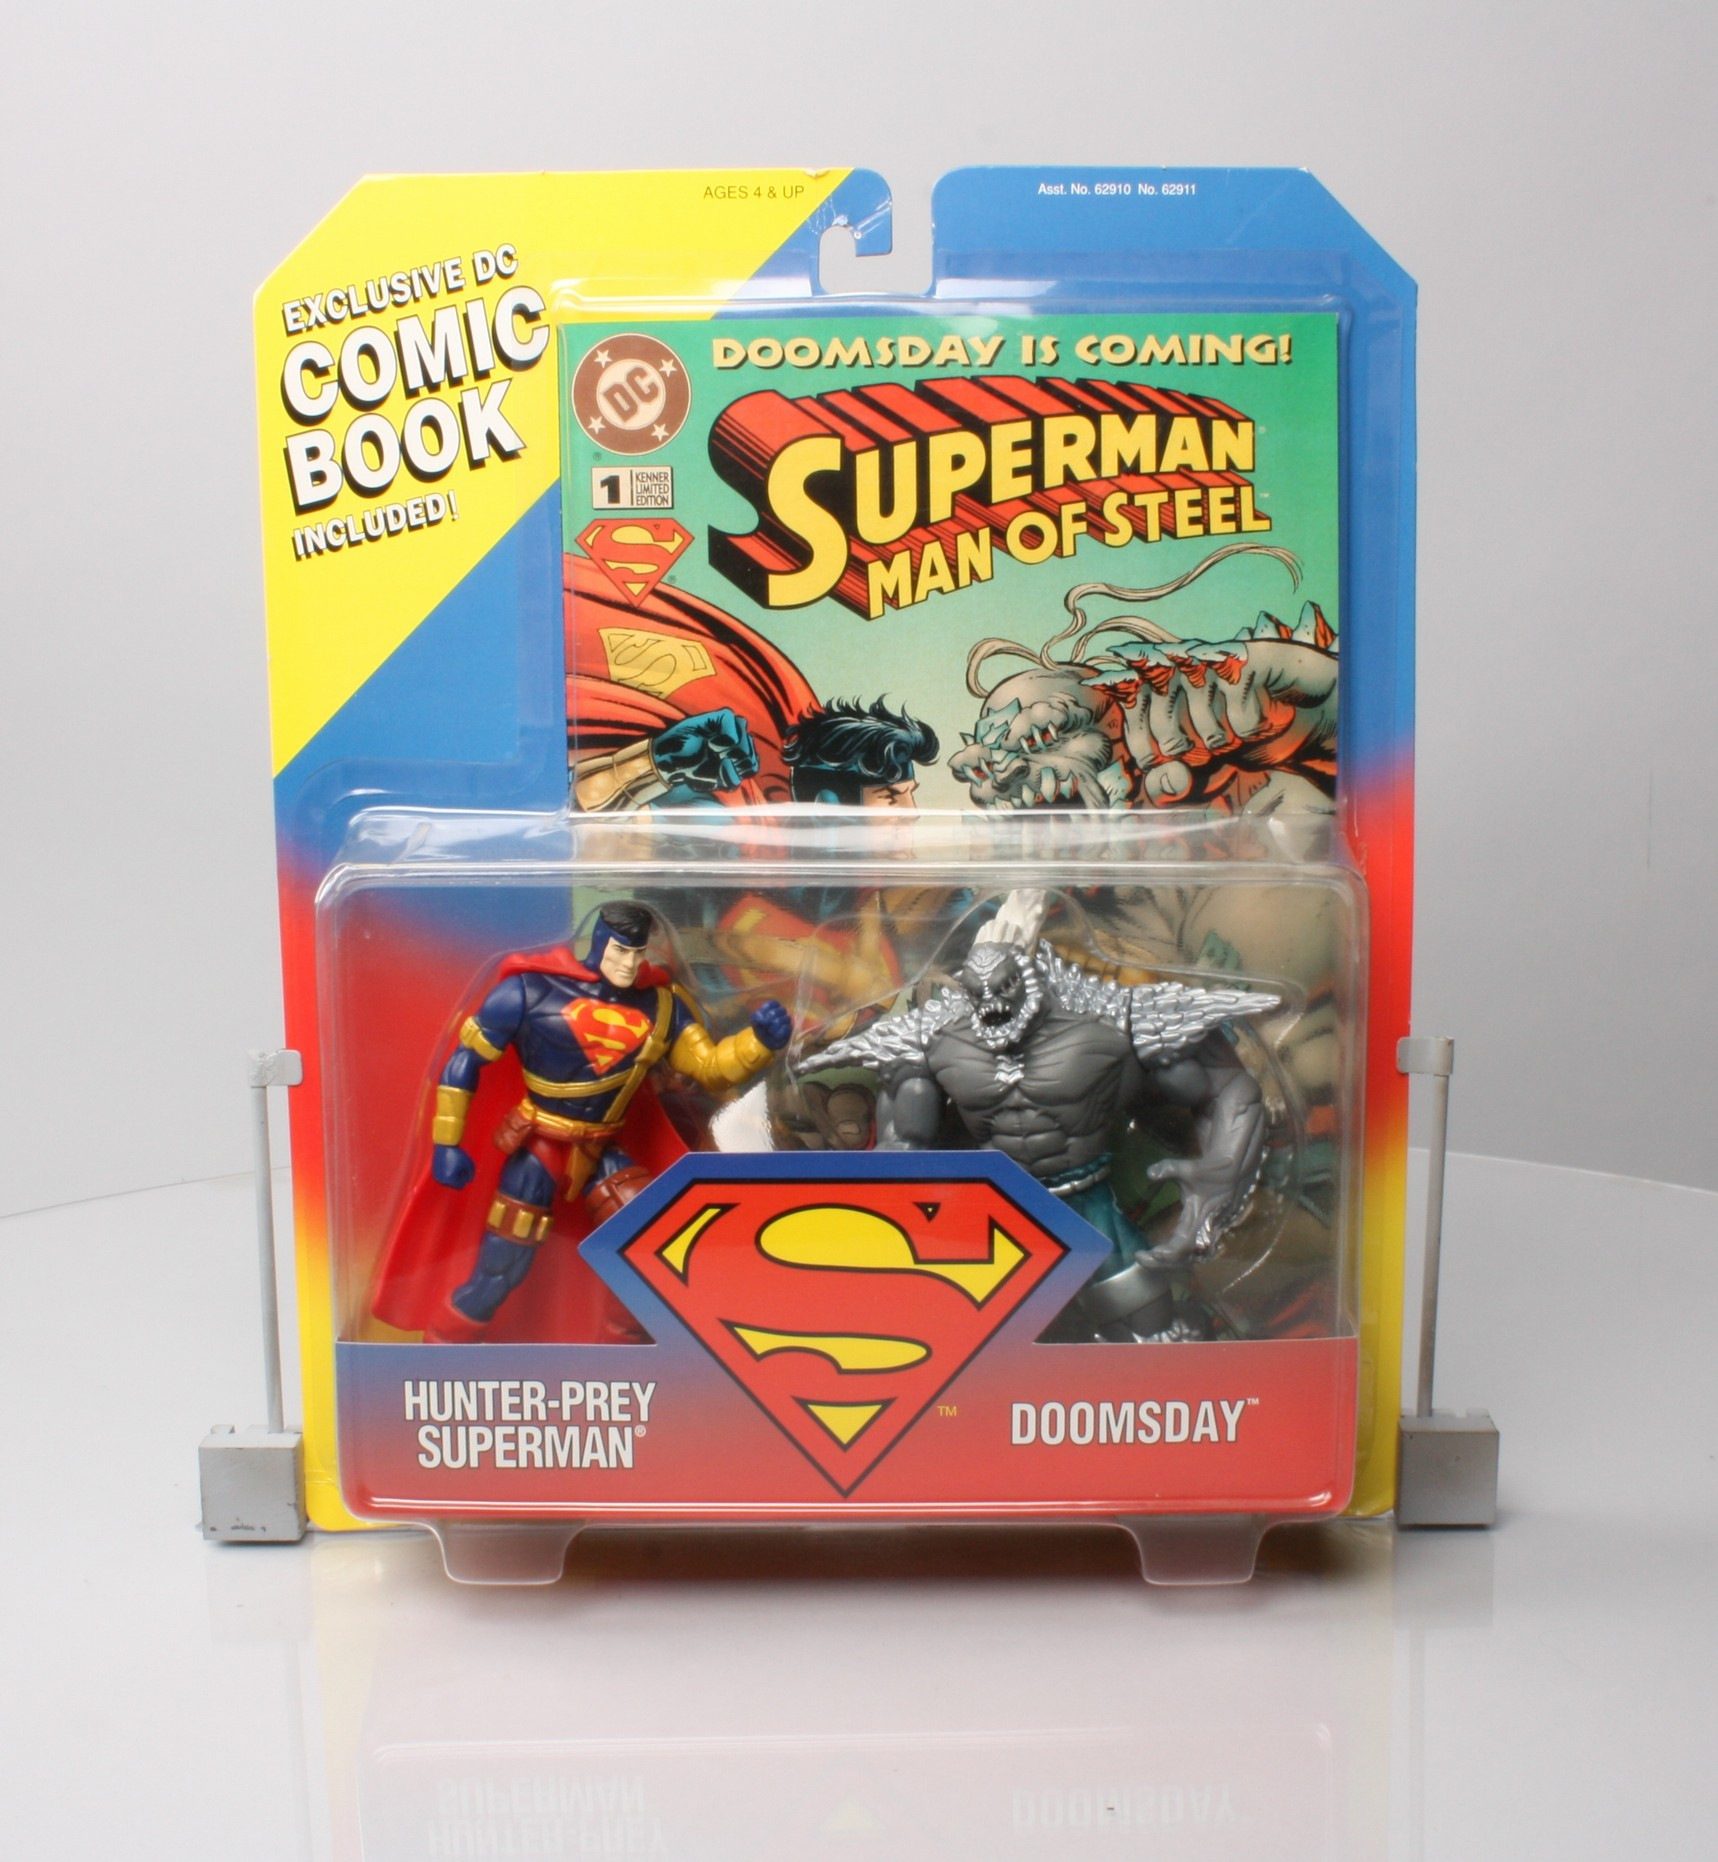 Hunter Prey Superman Doomsday Exclusive Dc Comic Book Included